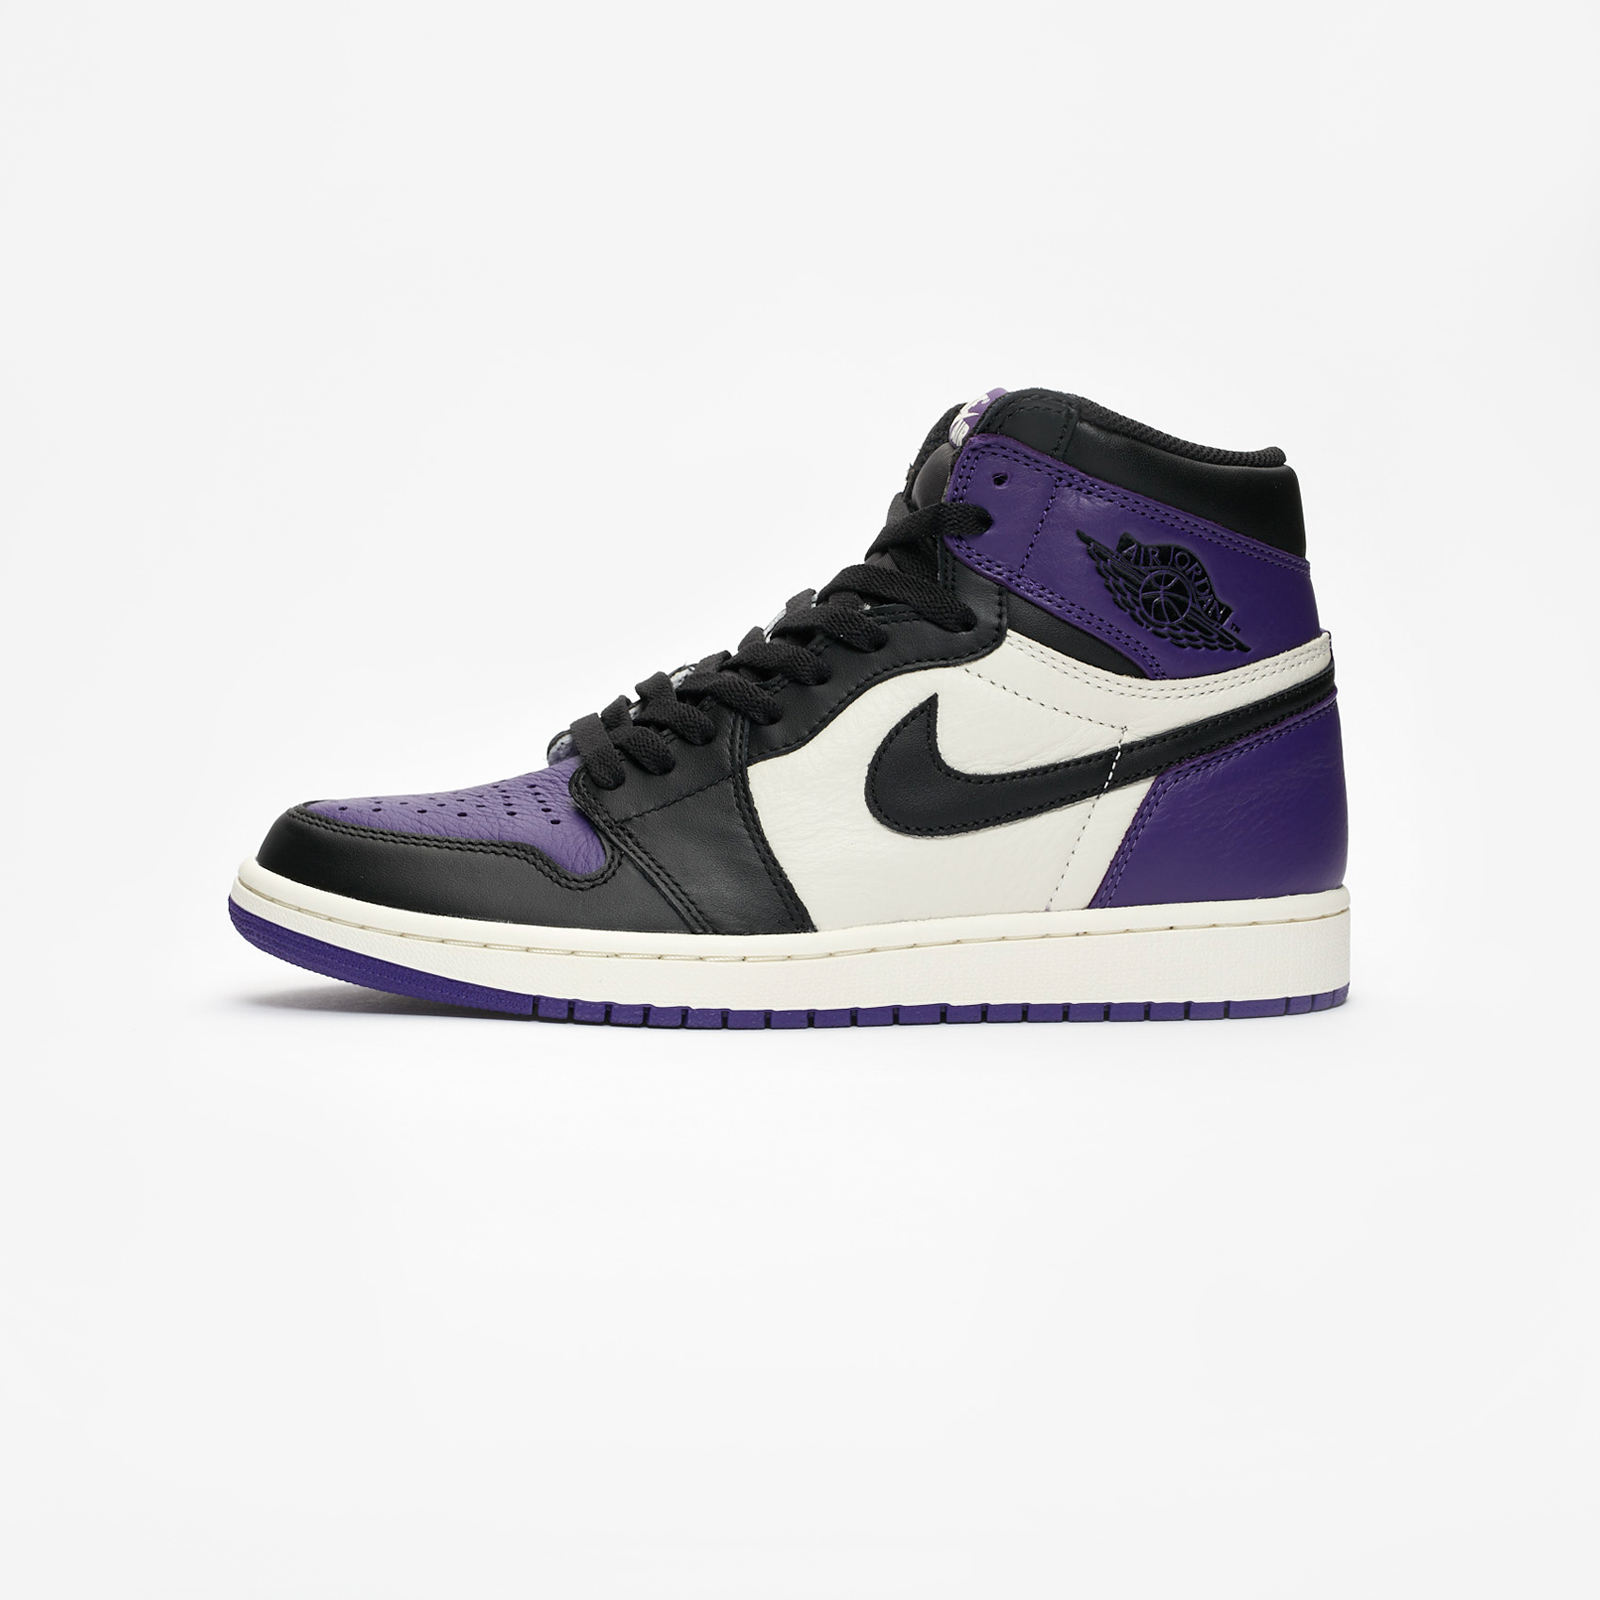 Jordan Brand Air Jordan 1 Retro High OG - 555088-501 ... dc4ce9951